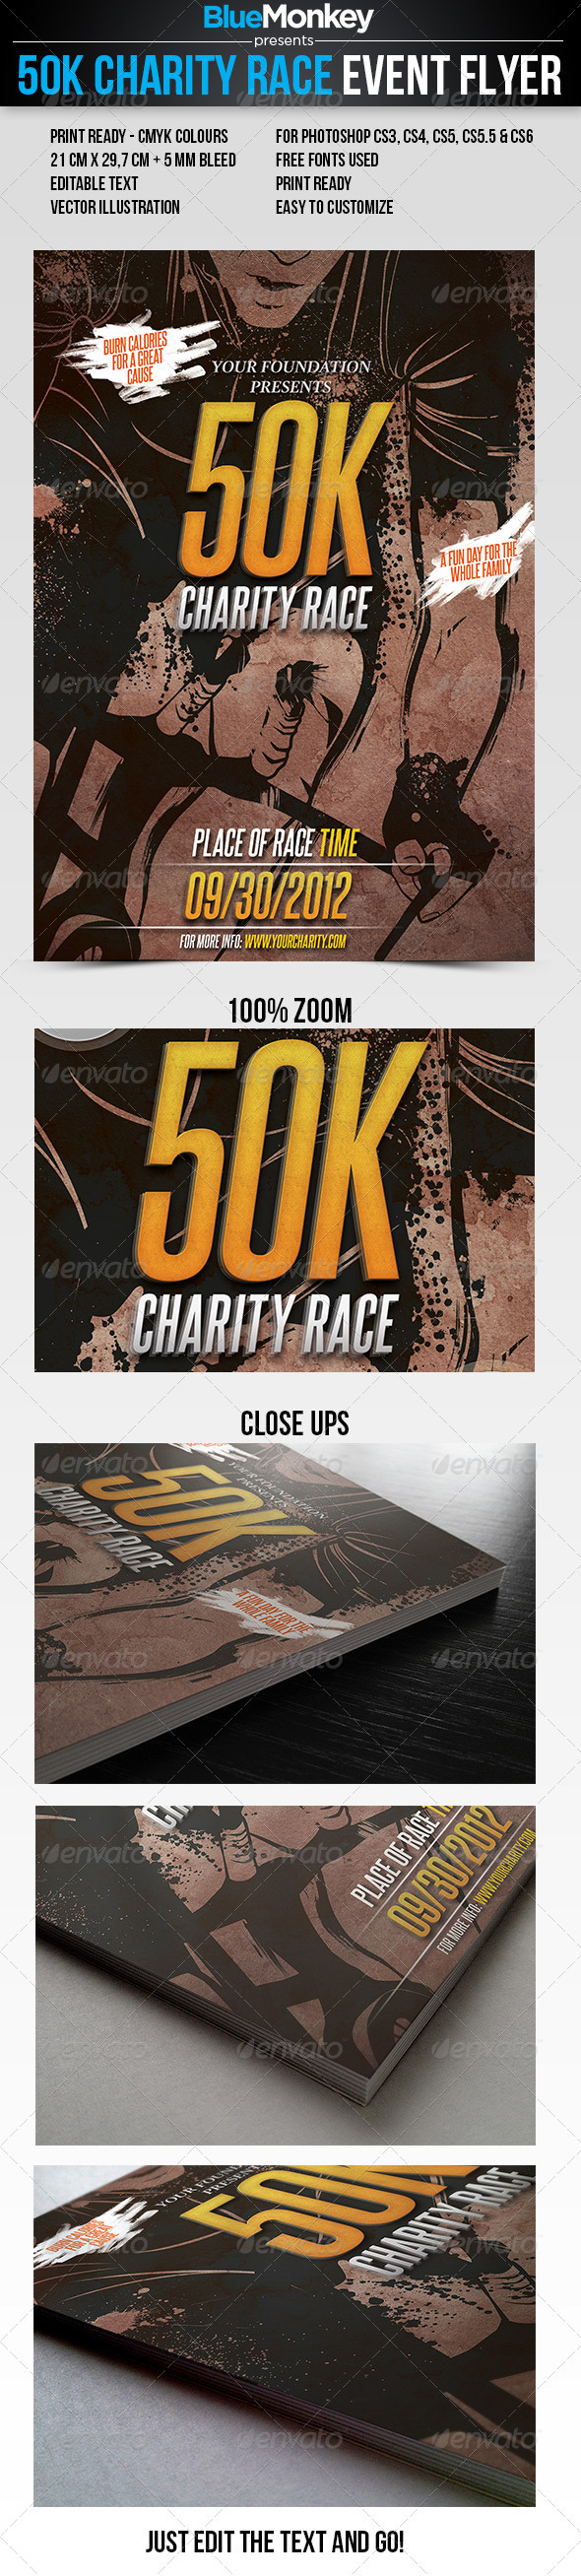 50K Charity Race Event Flyer - Events Flyers